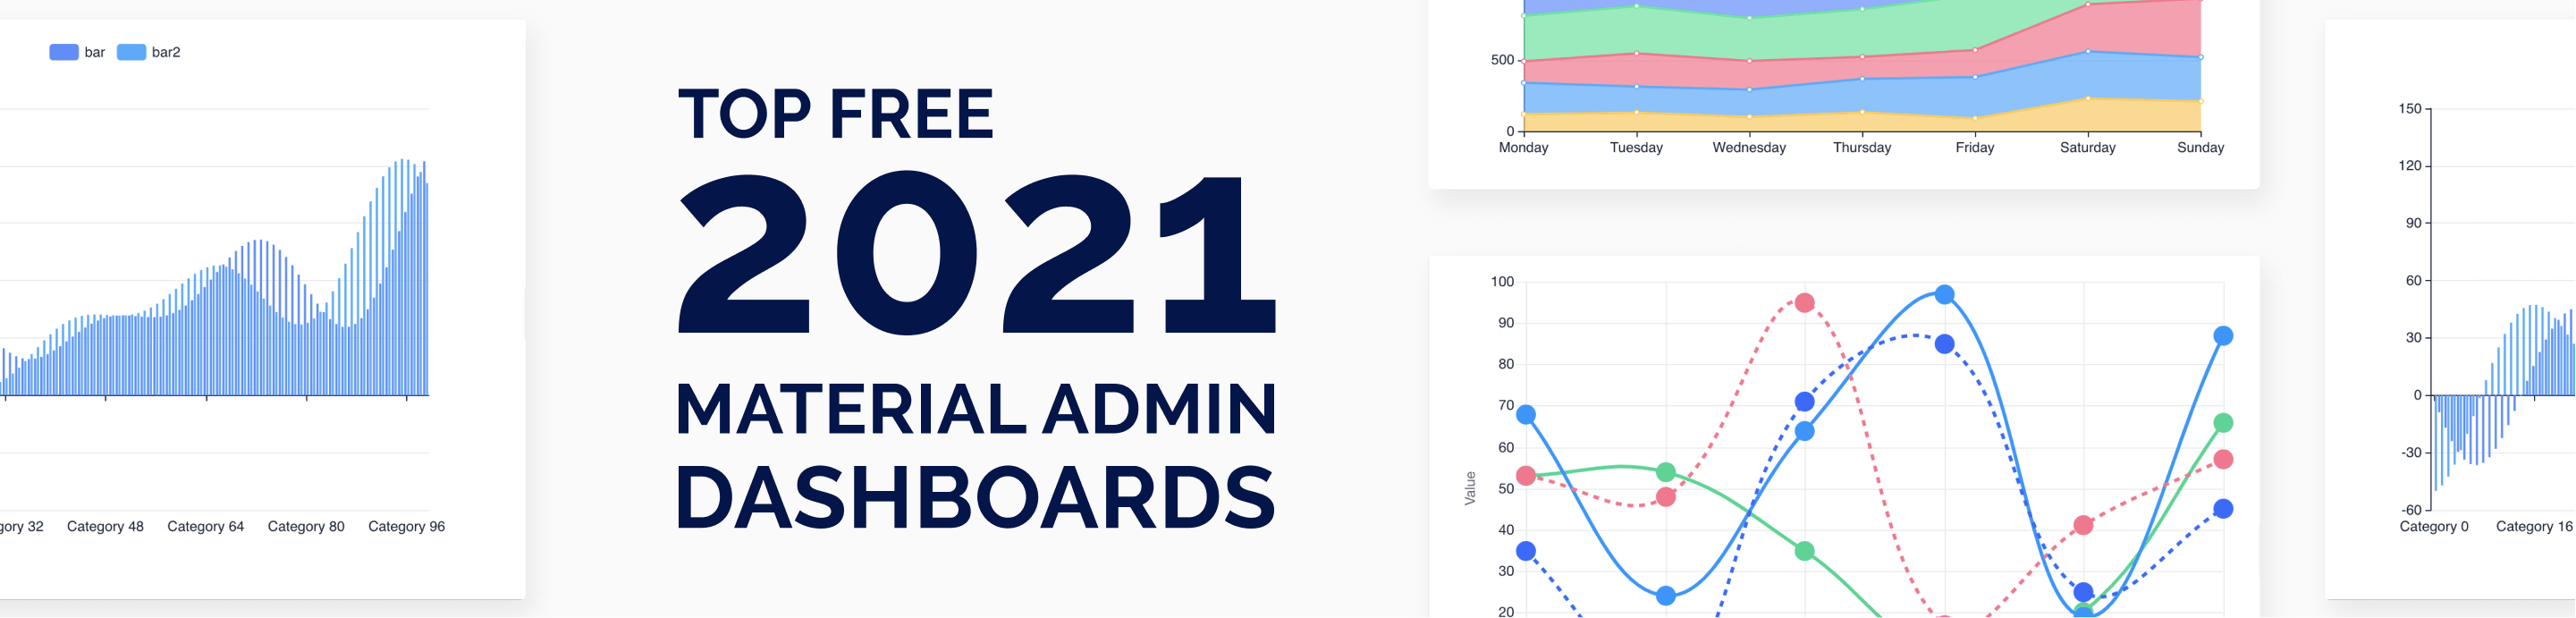 Top free Material Admin Dashboards 2021